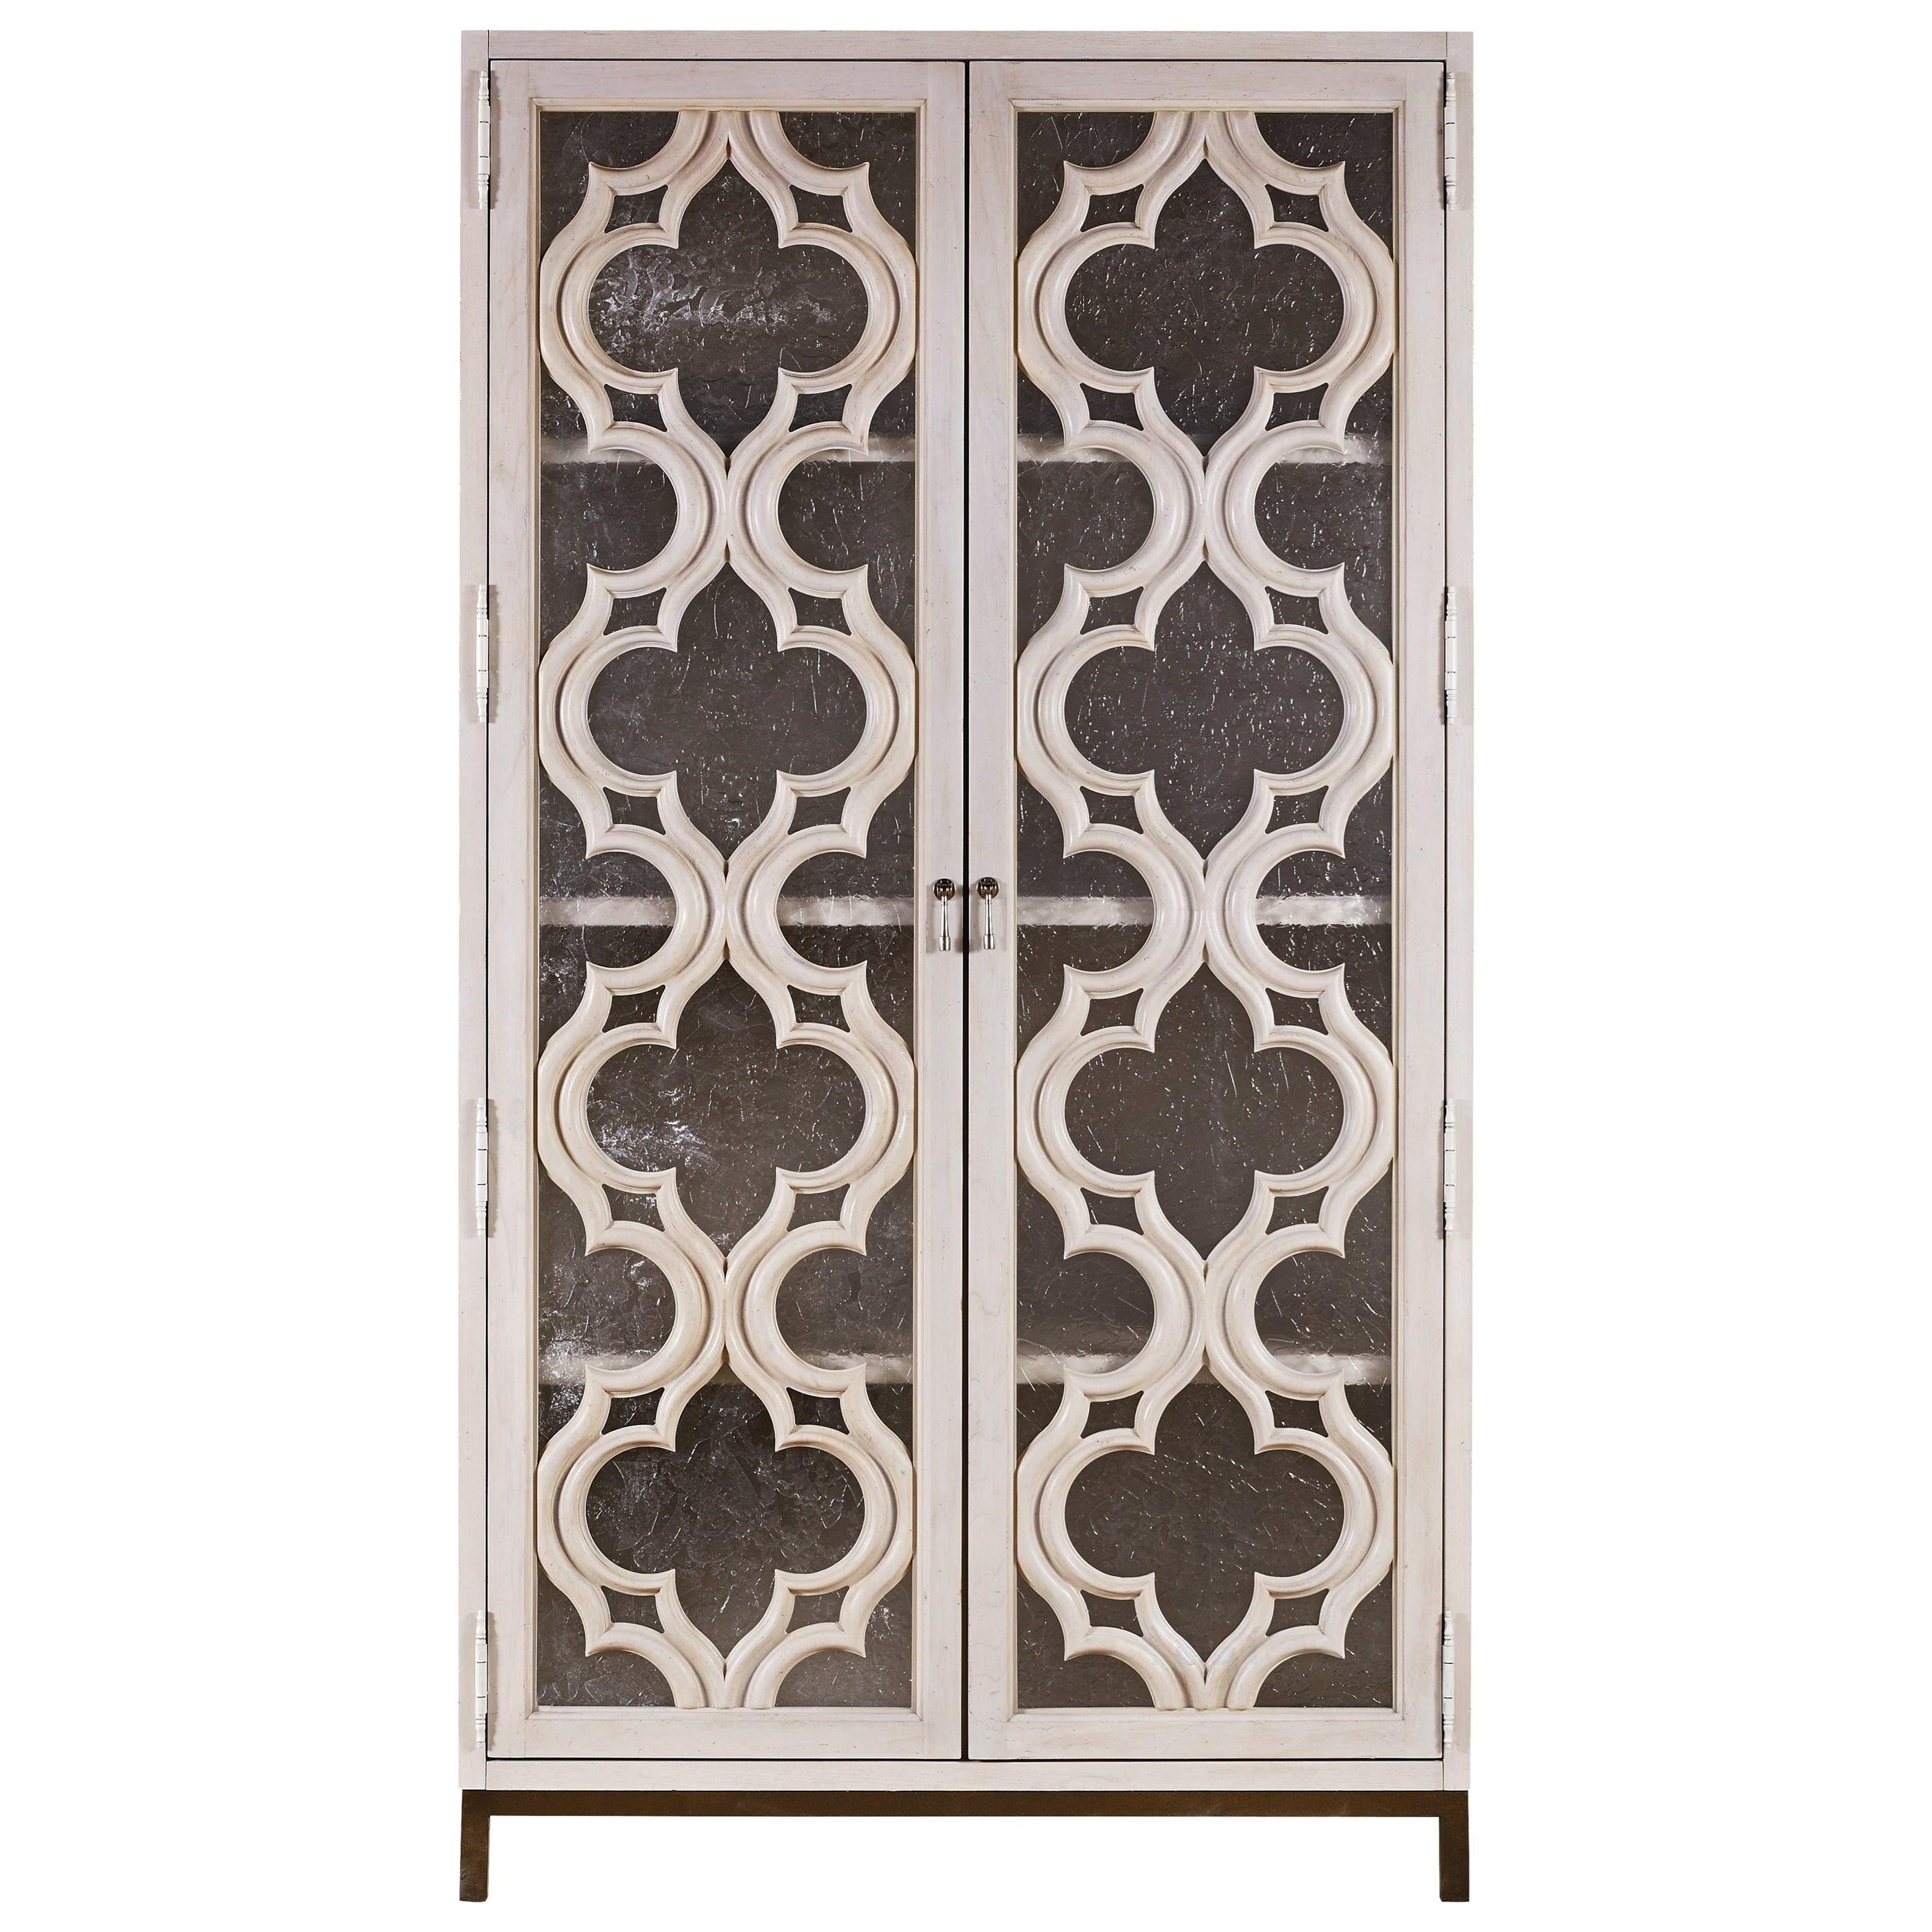 Morris Home Furnishings Élan Elance Storage Cabinet - Item Number: 637675